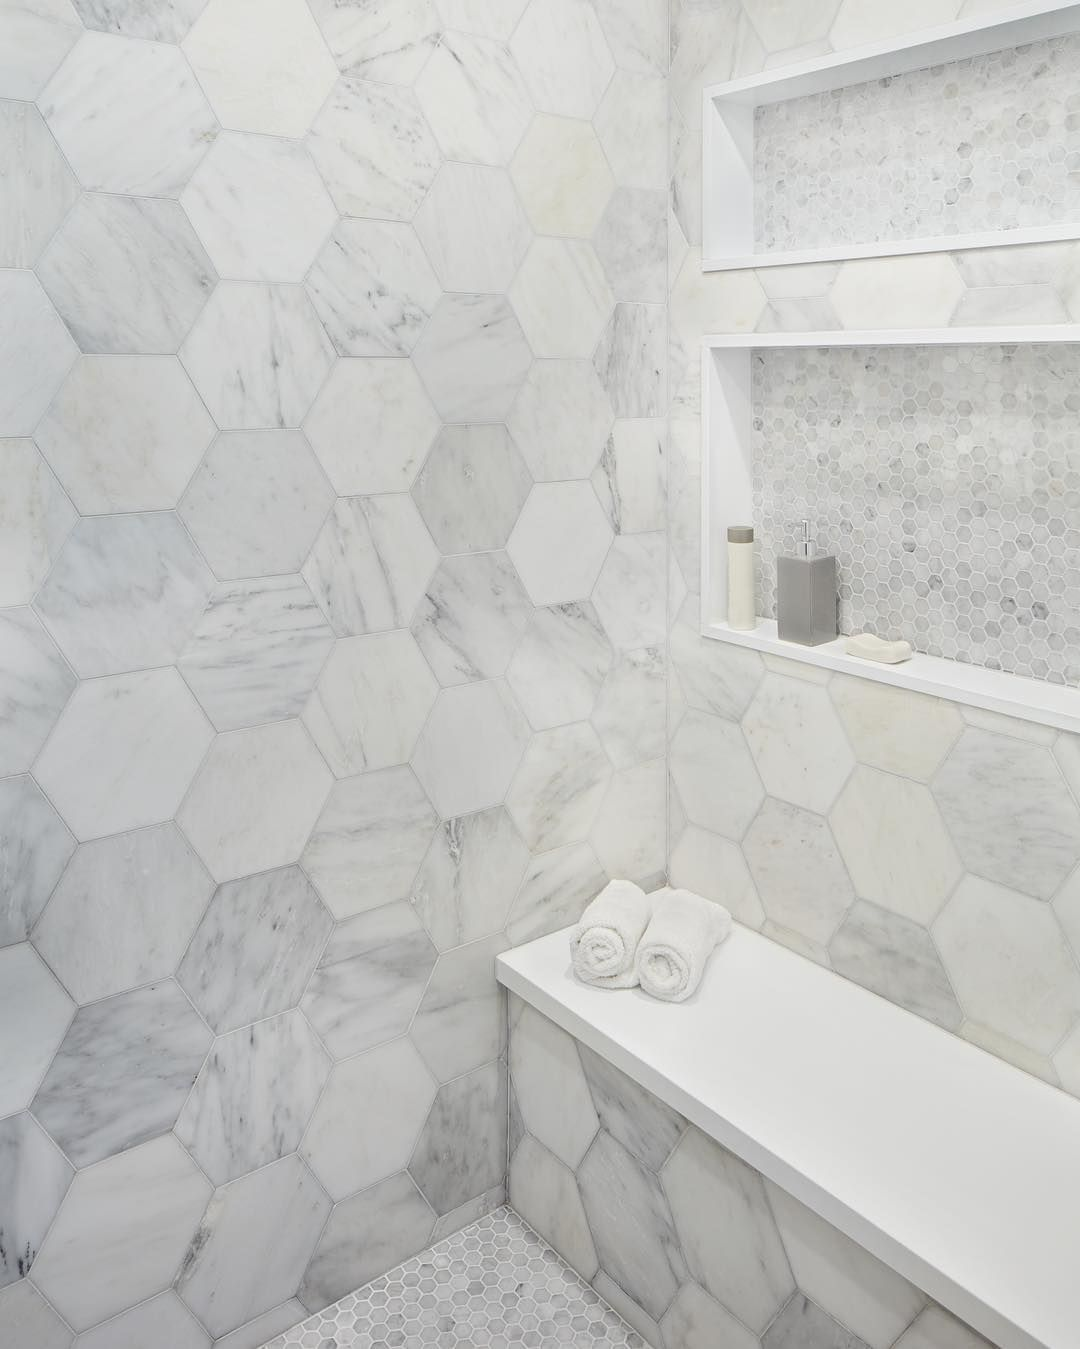 102 Likes 8 Comments Lauren Goldman Lorodesigns On Instagram No Case Of The Mondays For These Lucky Shower Remodel Shower Wall Tile Shower Accent Tile